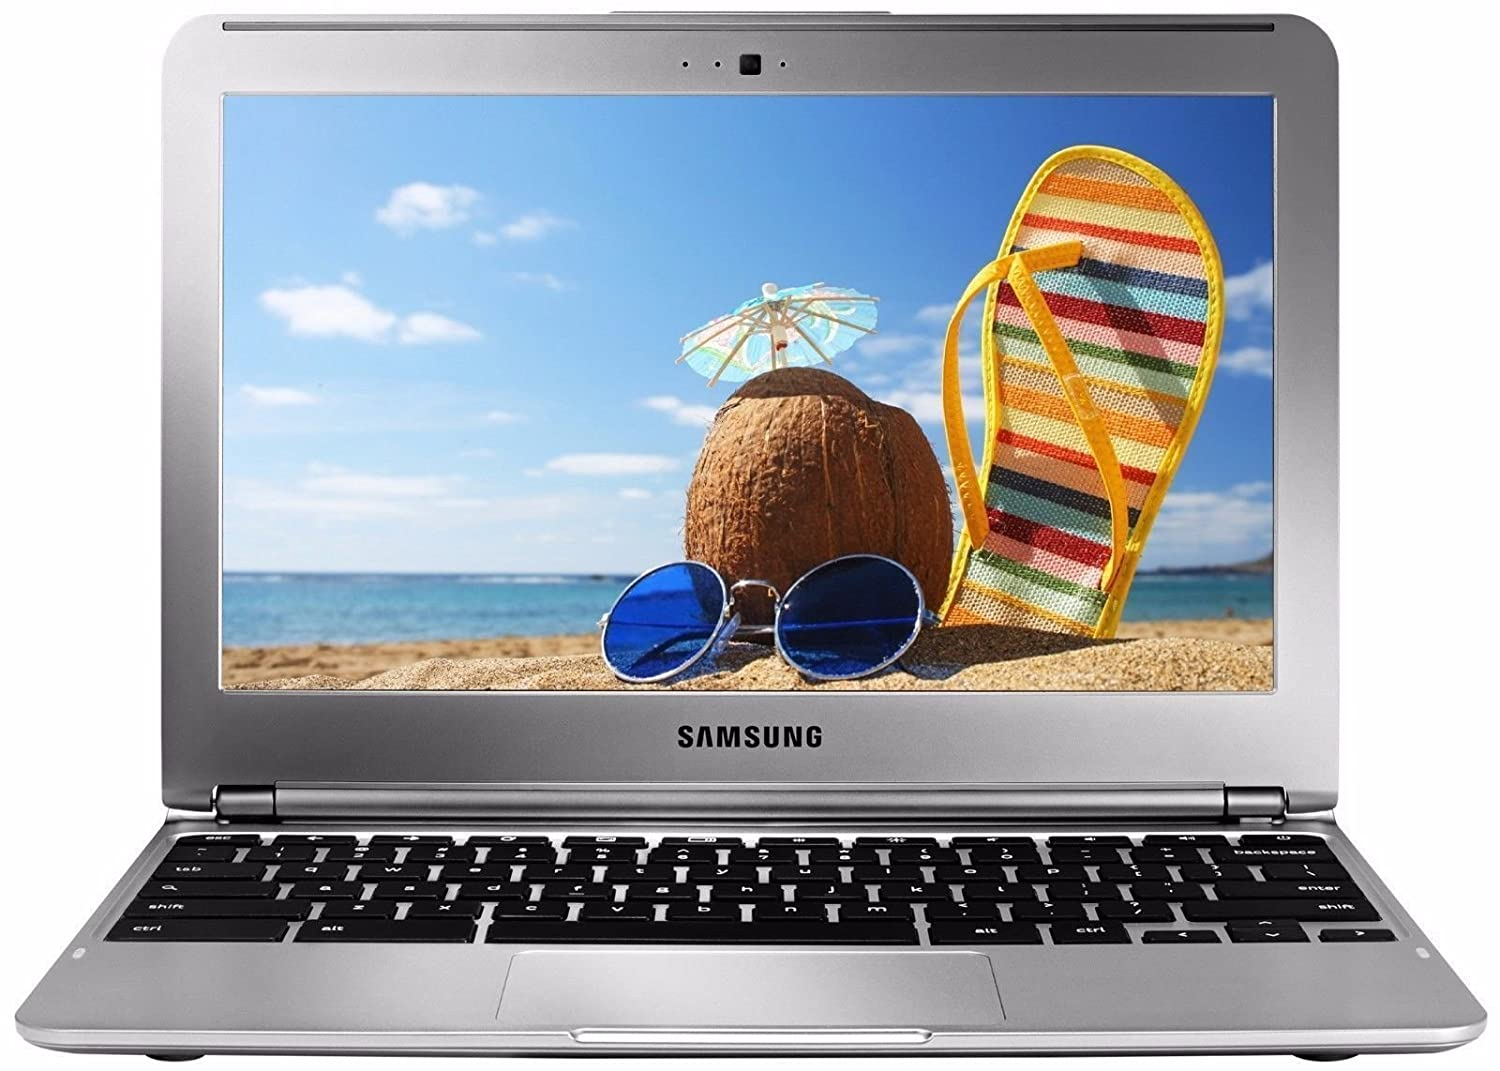 """Amazon.com: Samsung XE303C12-A01US Samsung Exynos 5250 X2 1.7GHz 2GB 16GB  SSD 11.6"""",Silver(Certified Refurbished): Computers & Accessories"""